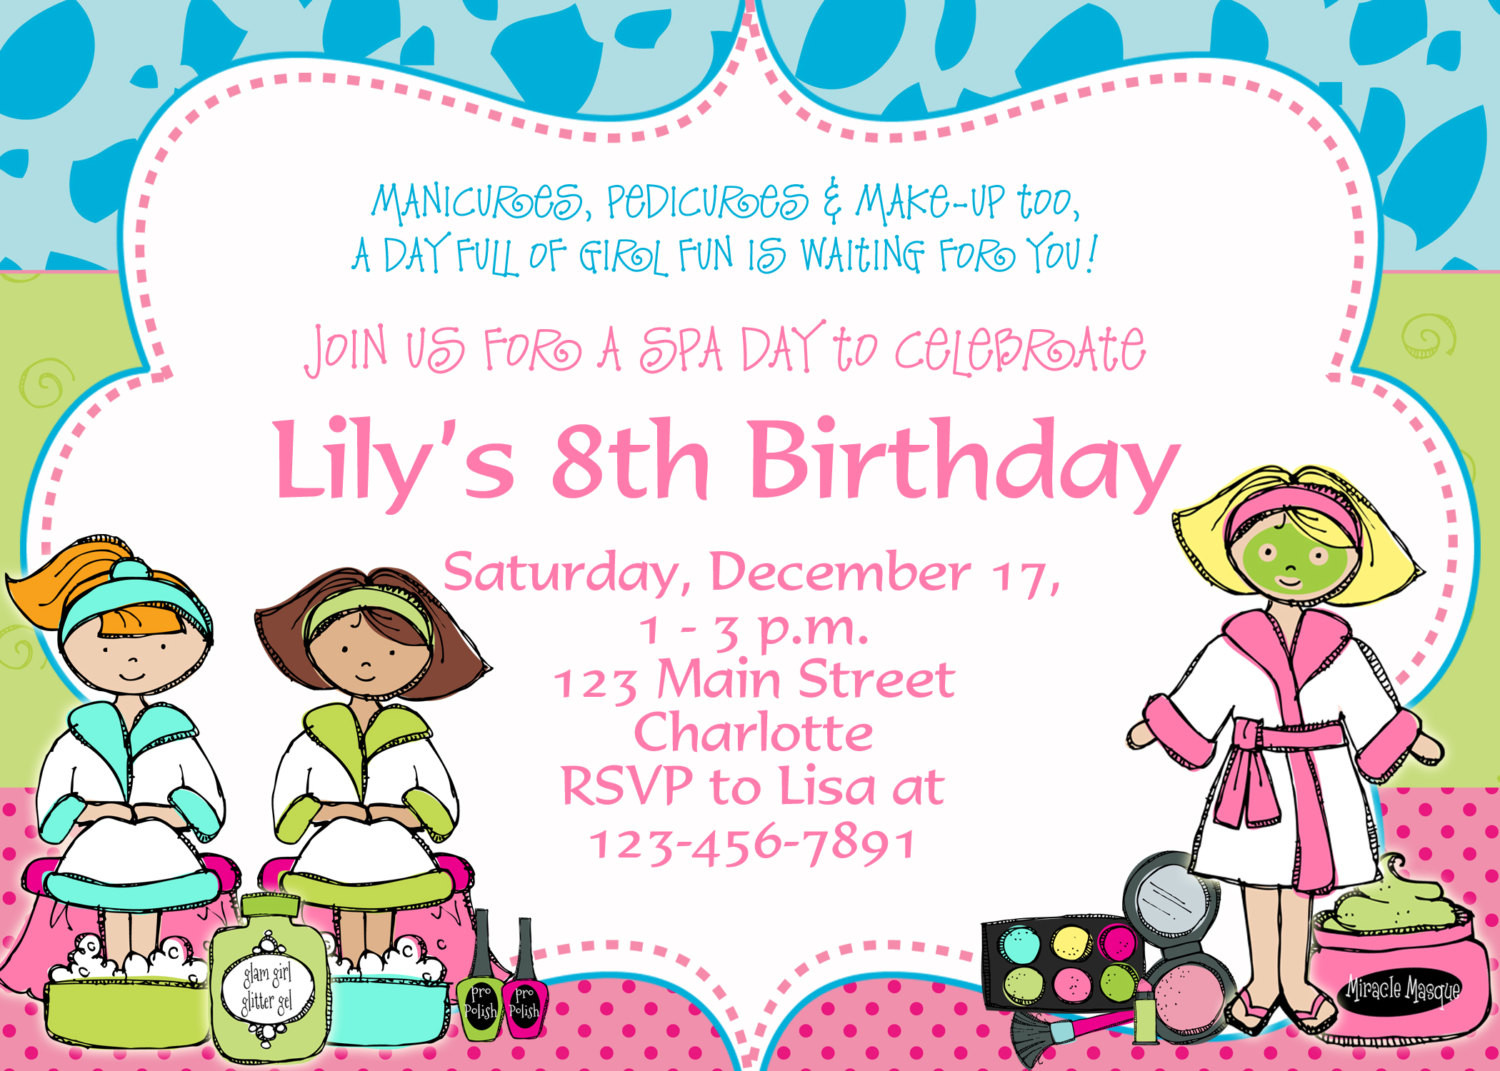 Best ideas about Invitation For Birthday Party . Save or Pin Free Birthday Party Invitation Templates Now.